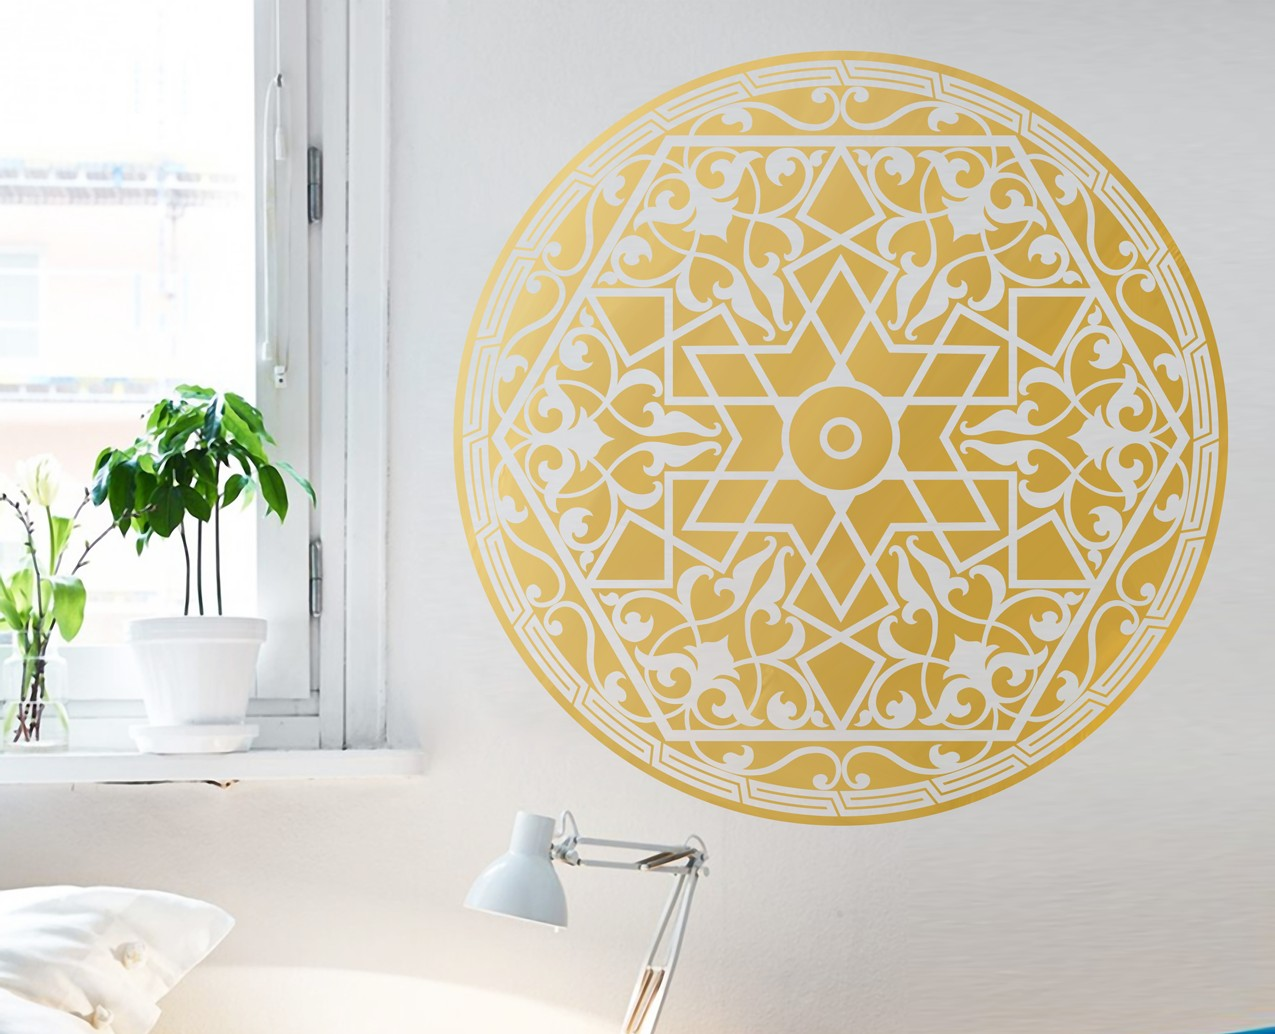 Arabic Wall Art Unique Arabic Pattern – Your Decal Shop | Wall Art Ideas